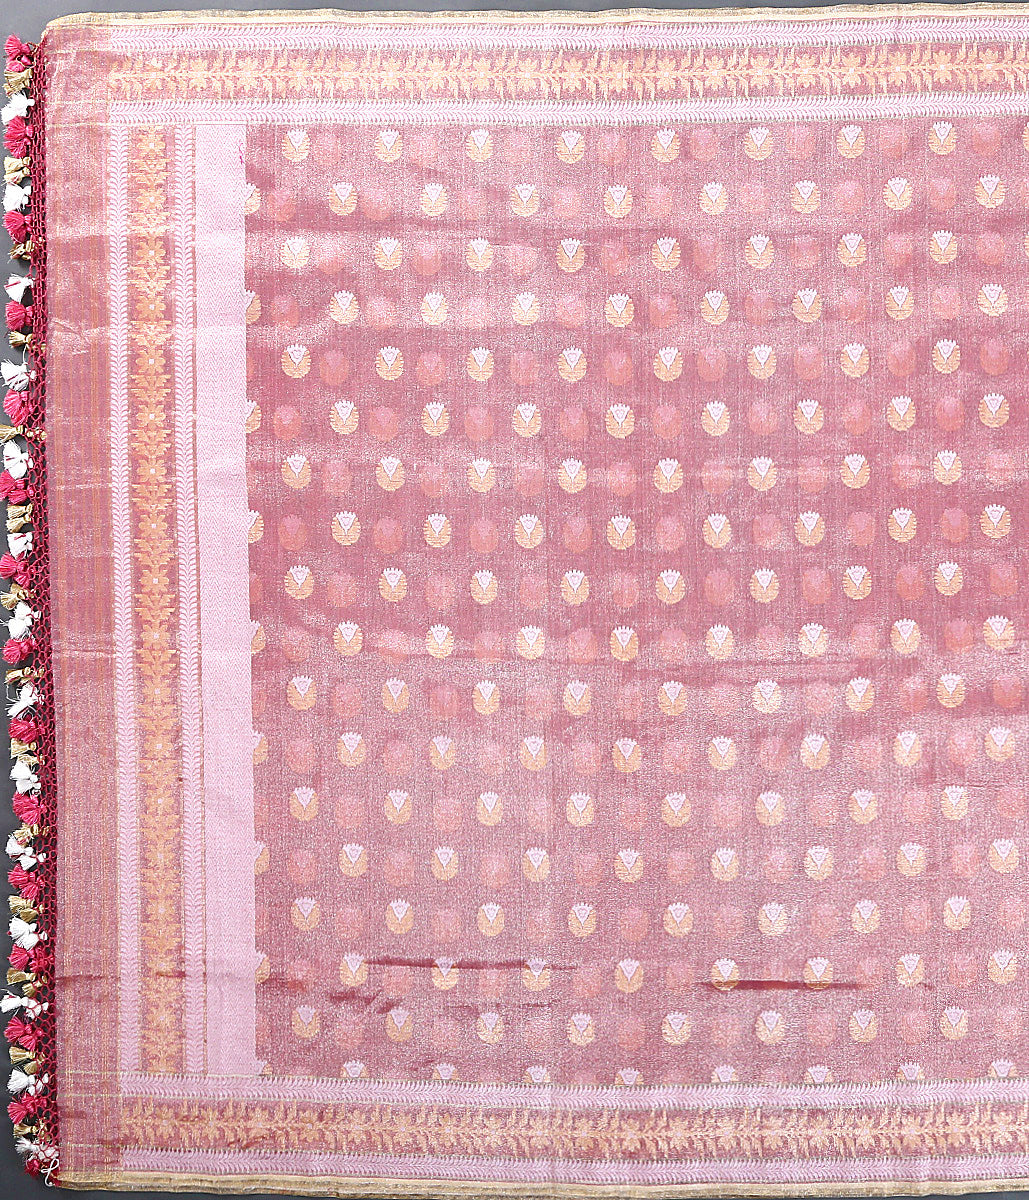 Soft pink and red pure mulmul cotton dupatta with tissue weft